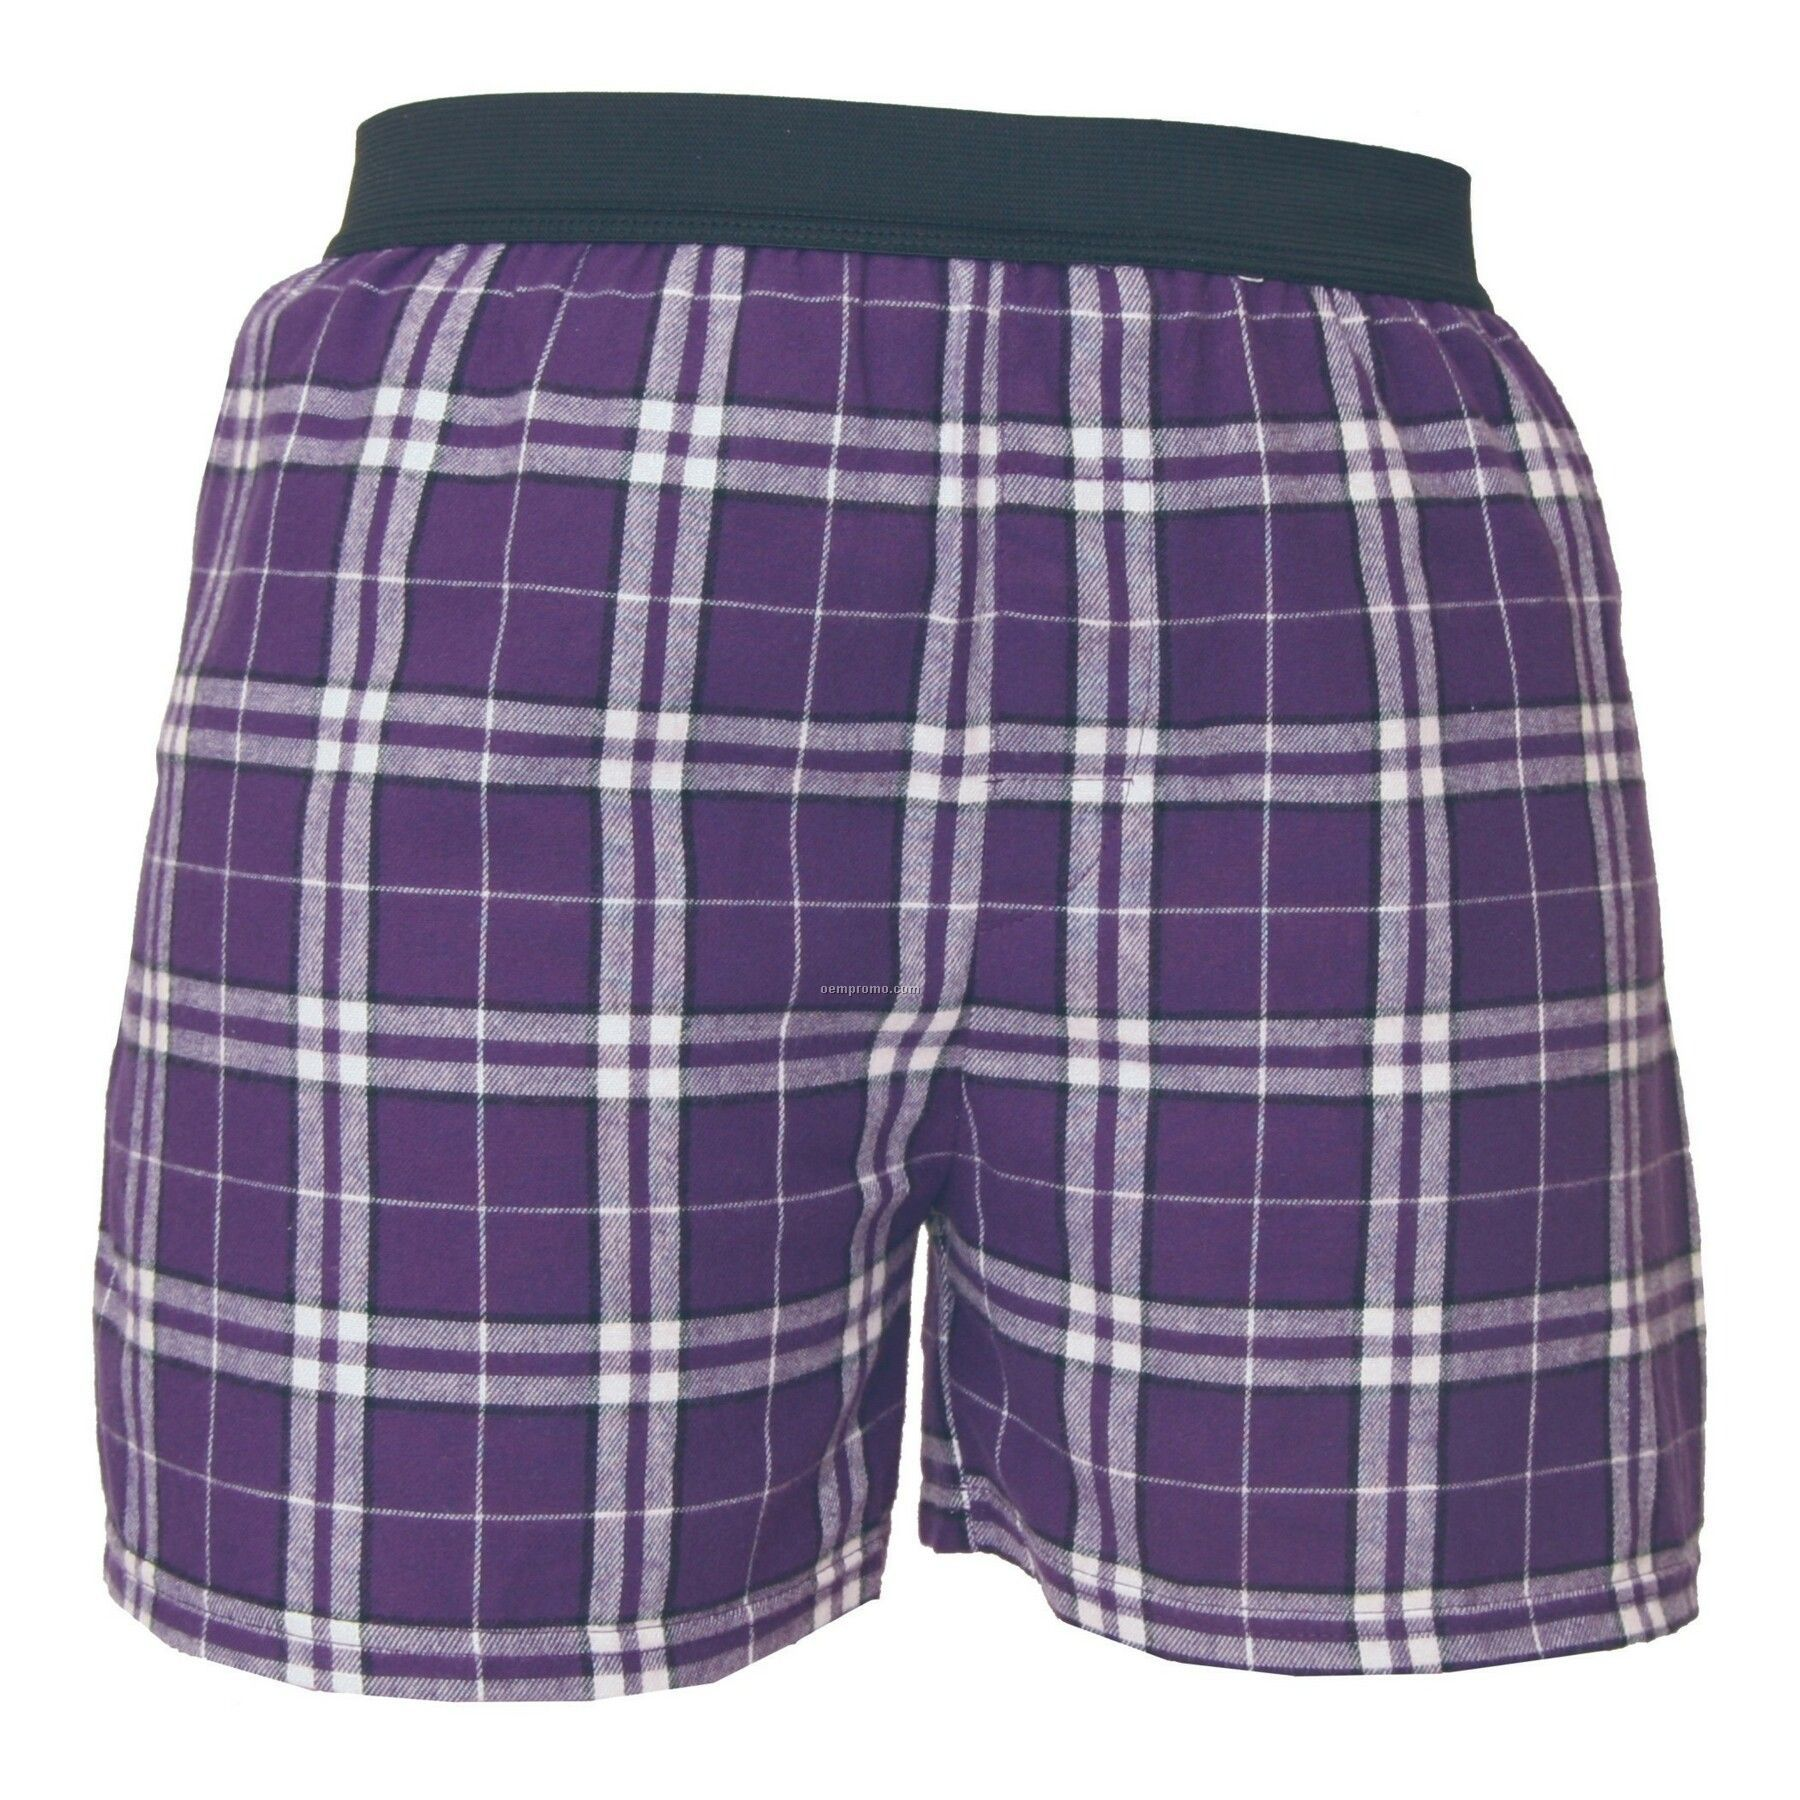 Youth Purple/White Plaid Classic Boxer Short